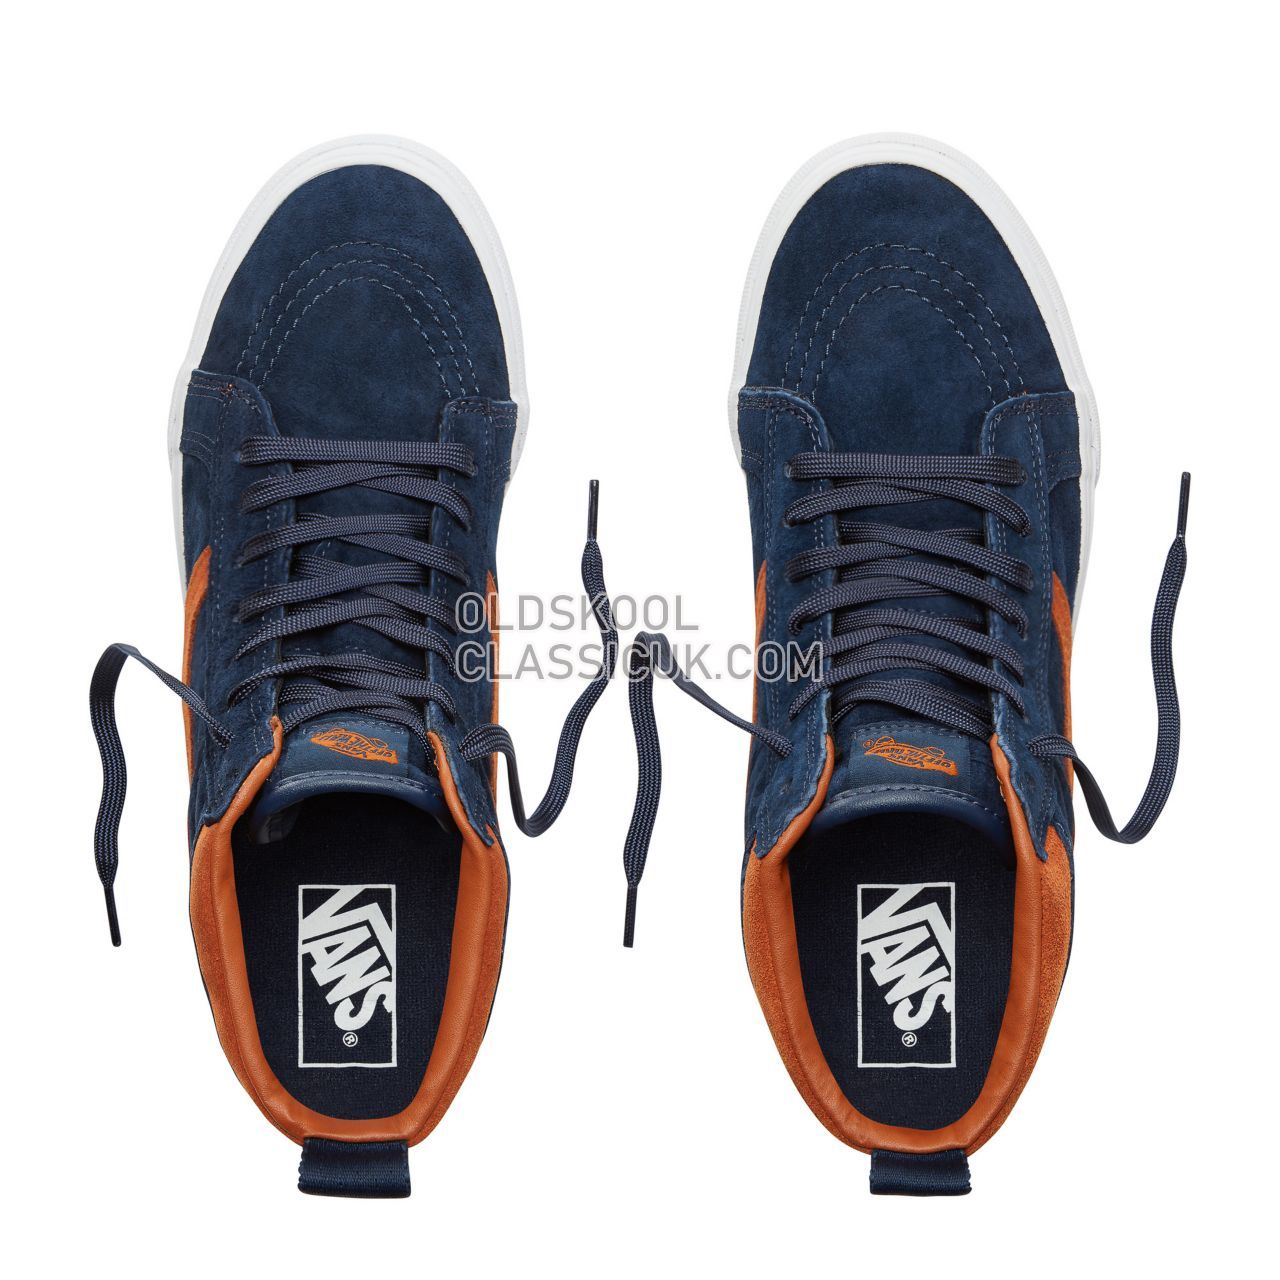 Vans Suede Sk8-Hi MTE Sneakers Mens (Mte) Suede/Dress Blues VA33TXUCB Shoes